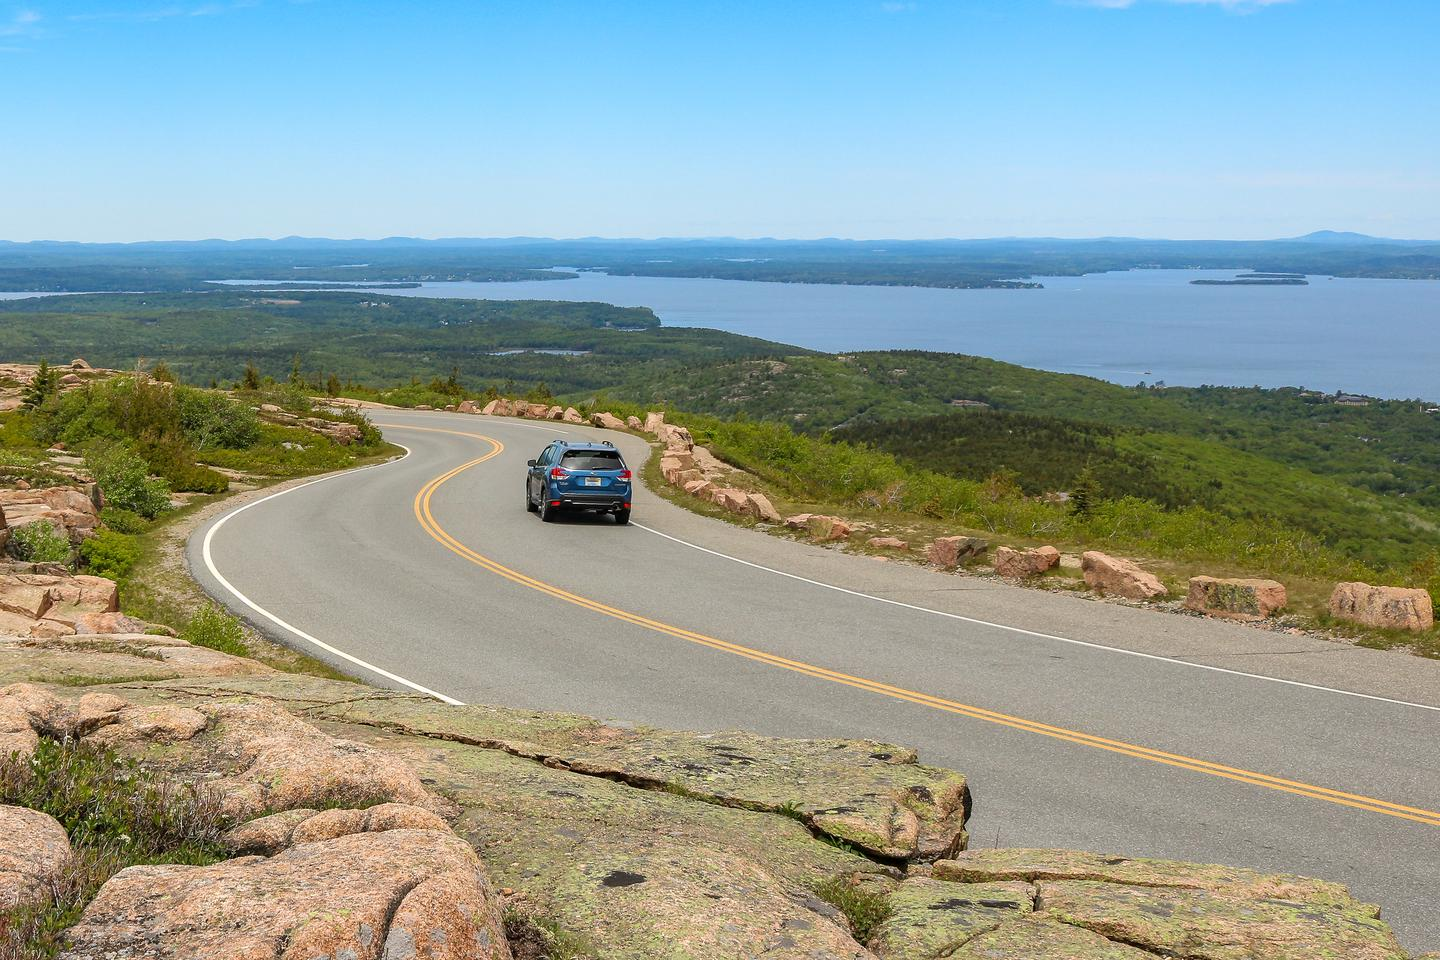 A car travels down a sinuous mountain road lined by large stones with a view to the right of the ocean and distant mountains in the background.Descending Cadillac Summit Road with views to the north of Frenchman Bay.